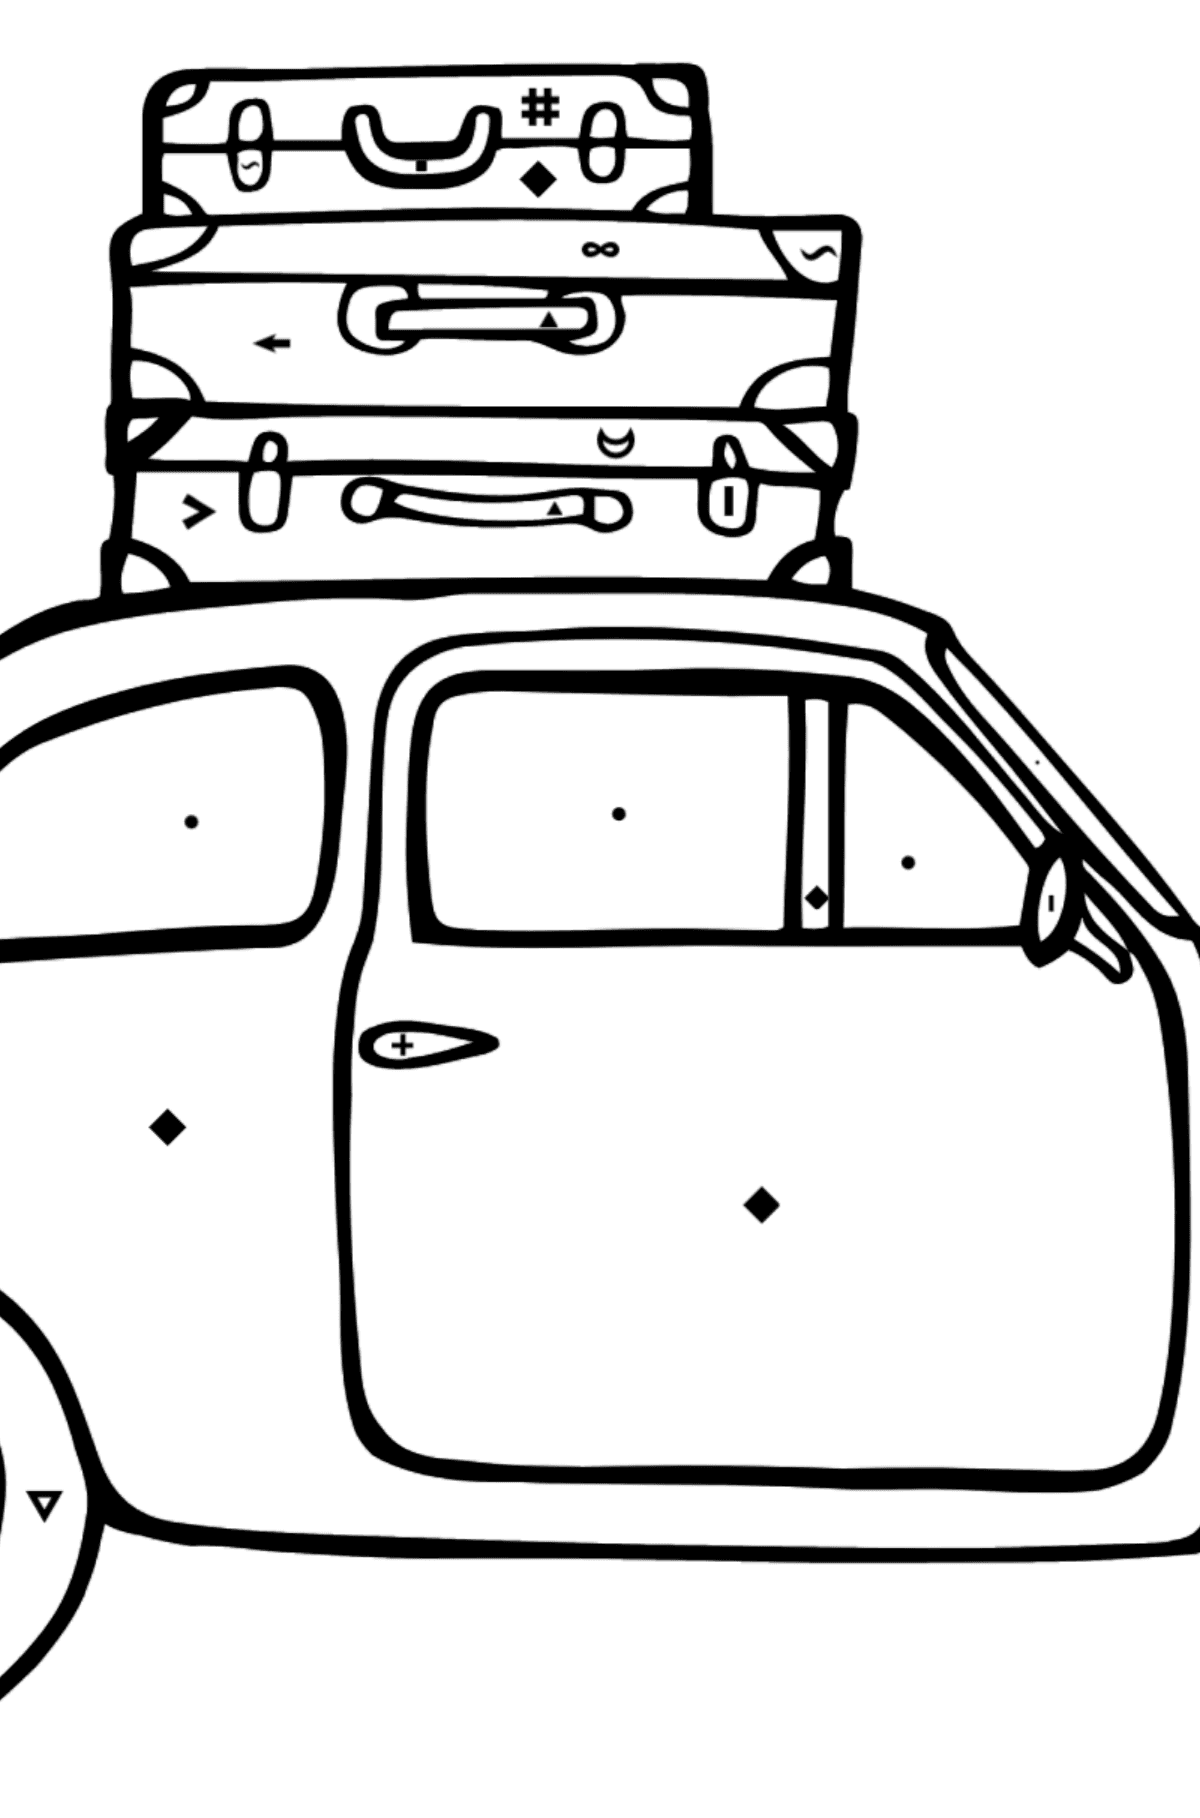 Fiat 600 car coloring page - Coloring by Symbols for Kids